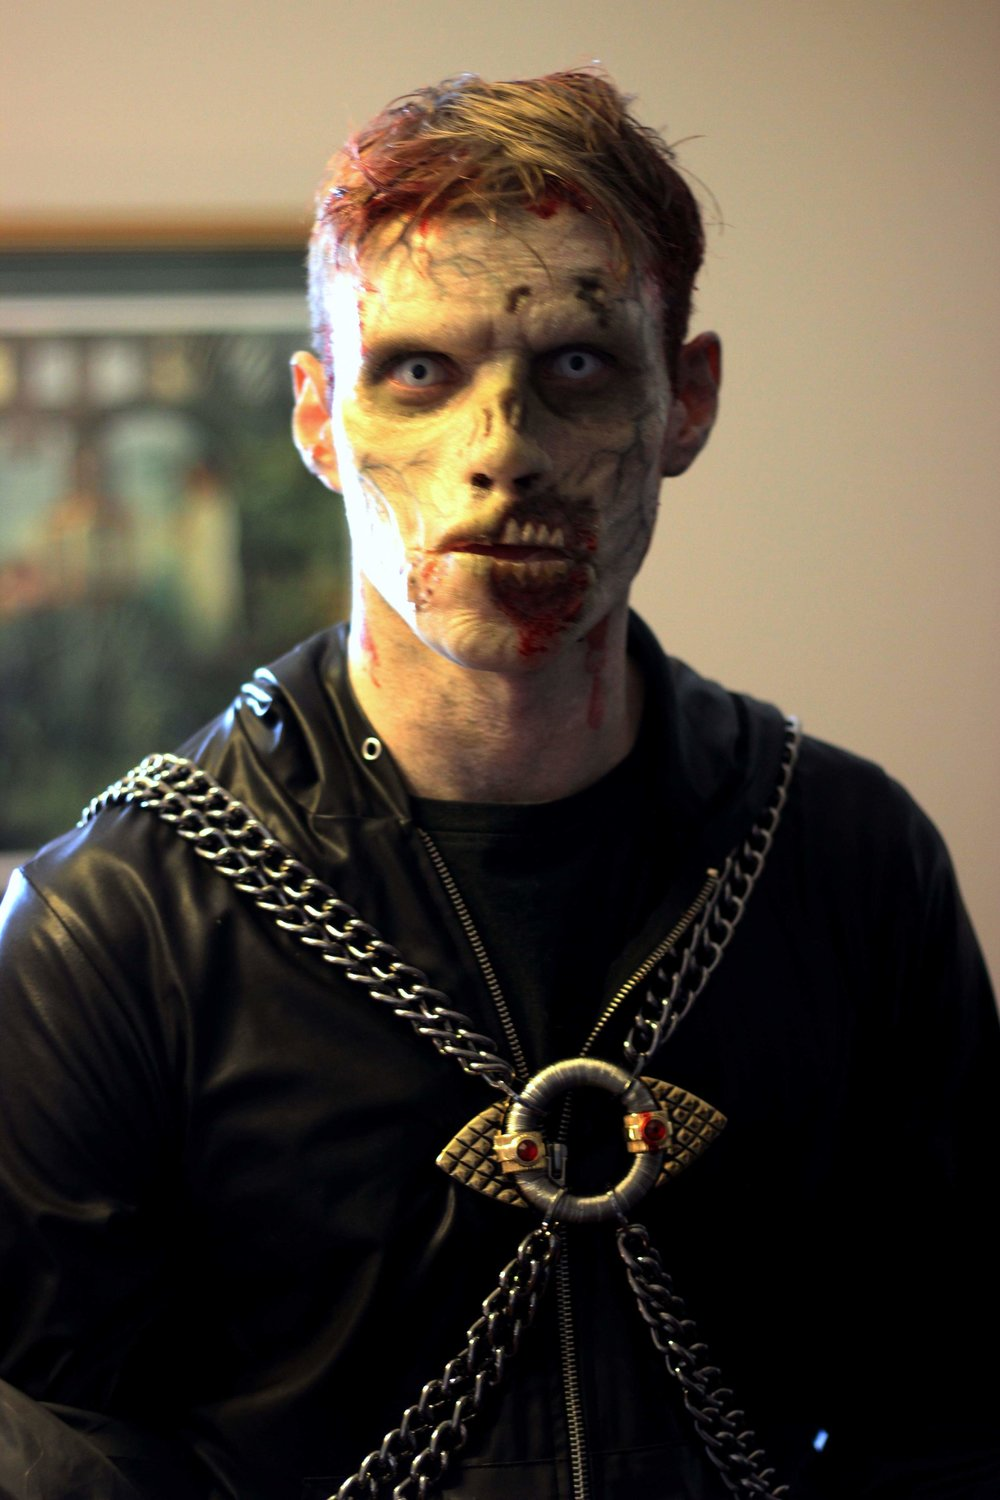 Zombie for Sickick Music Video  Photo and Makeup by Rhonda Morley Causton of Reel Twisted Effects